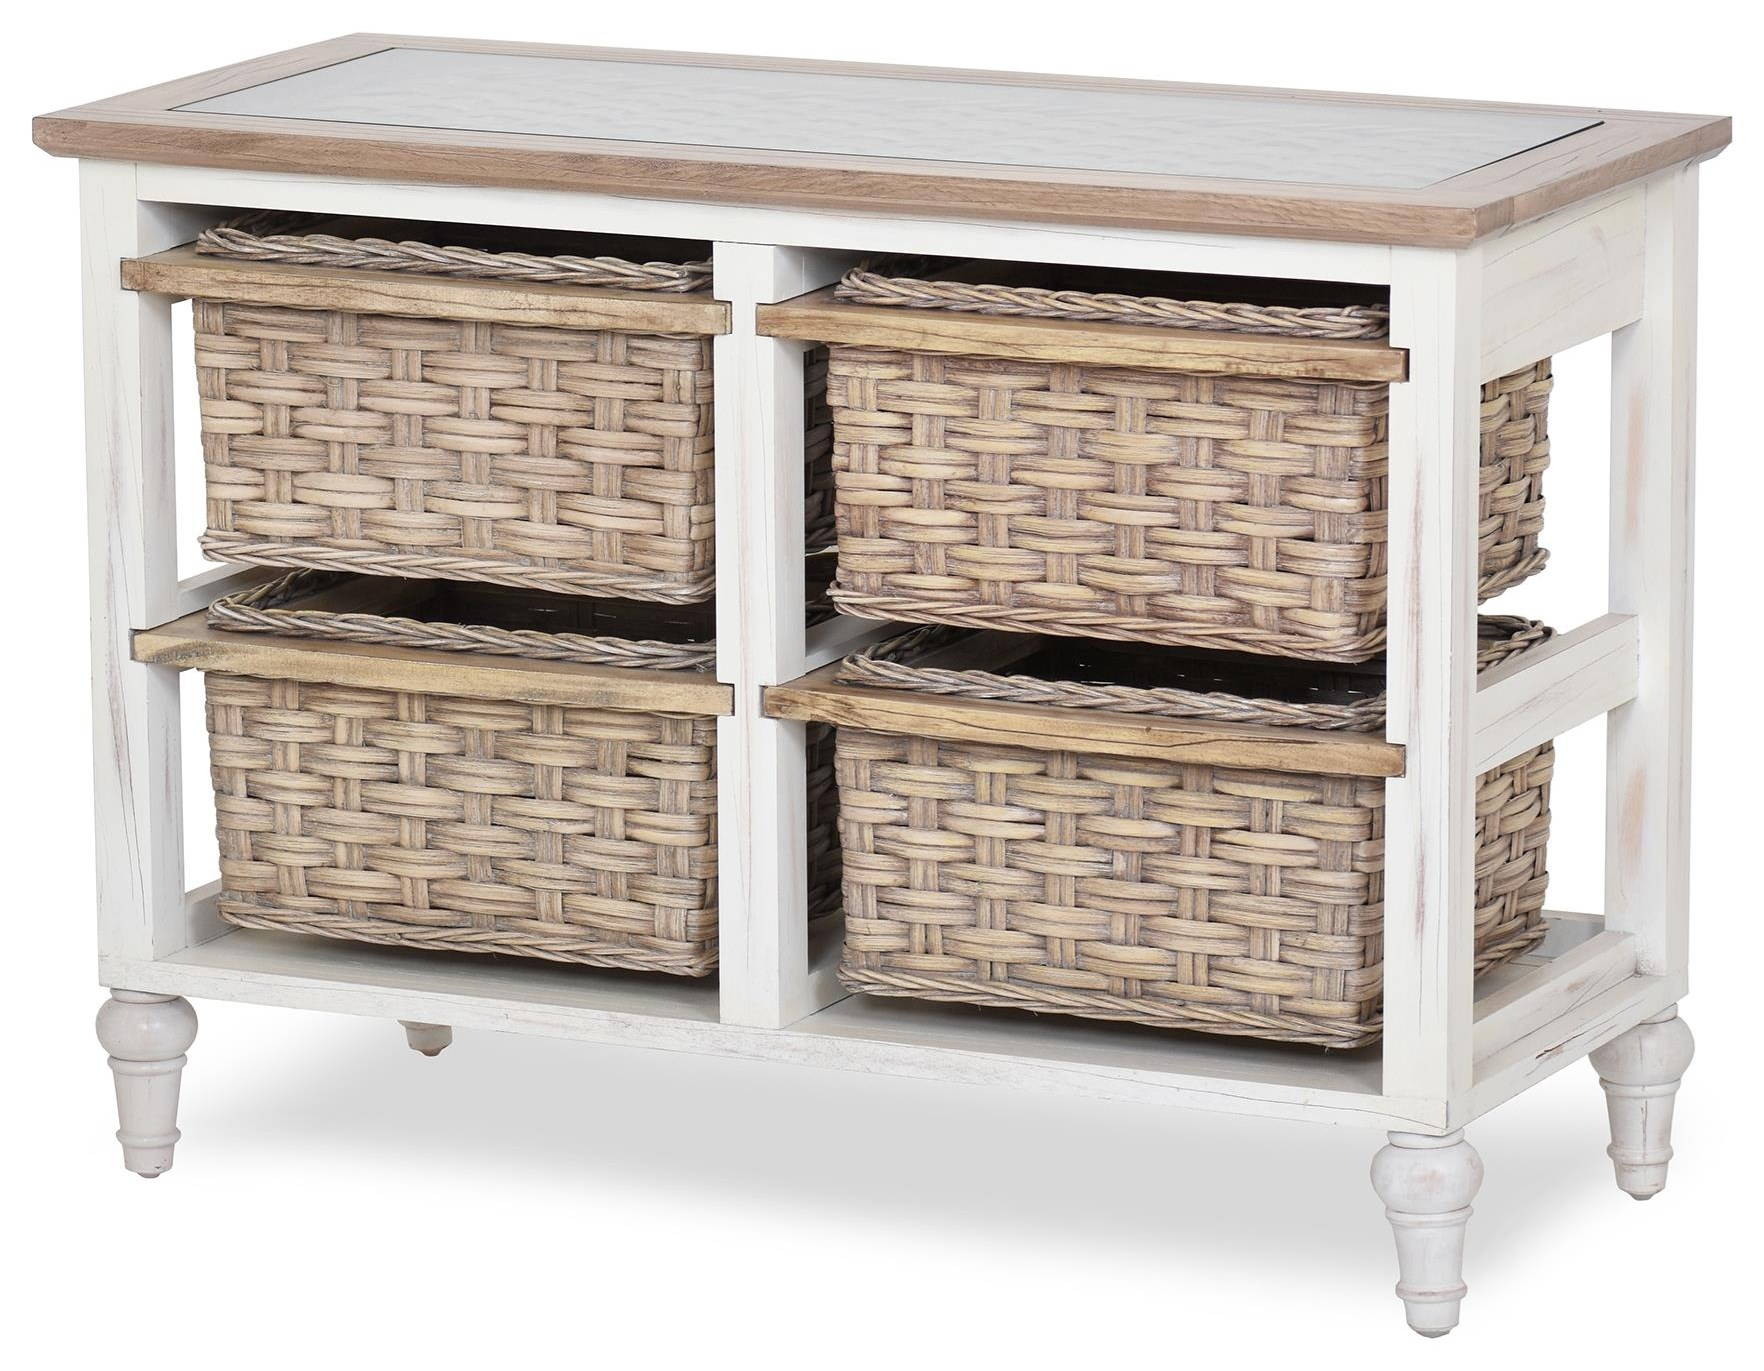 island breeze storage cabinet by Sea Winds Trading Company at Johnny Janosik